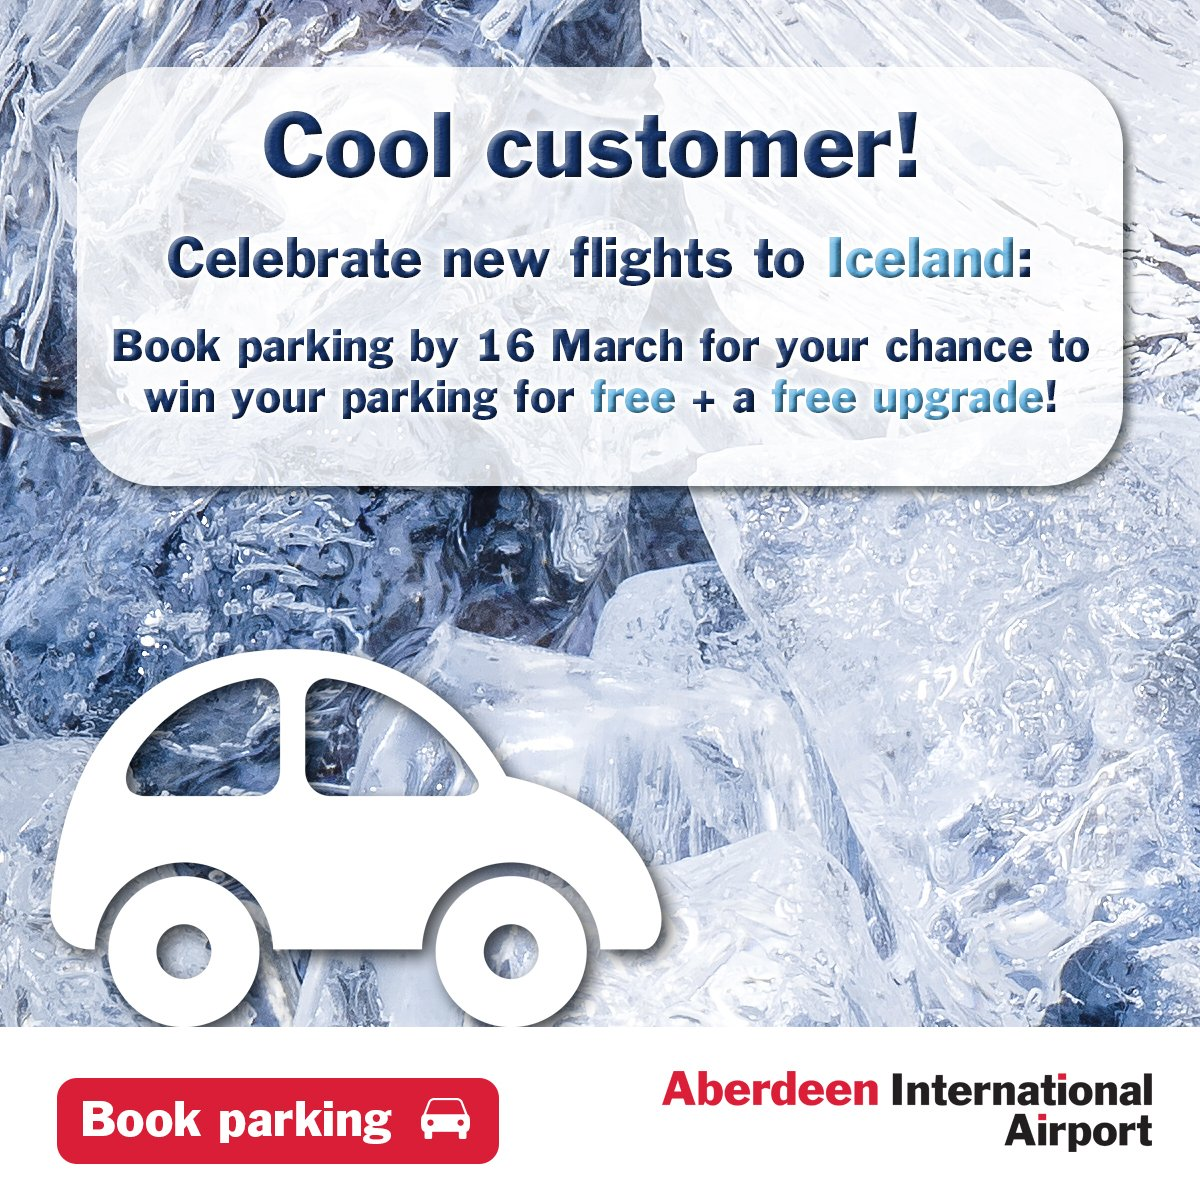 Celebrate new Iceland flights! Book parking by 16/03 for chance to win it free +  upgrade!